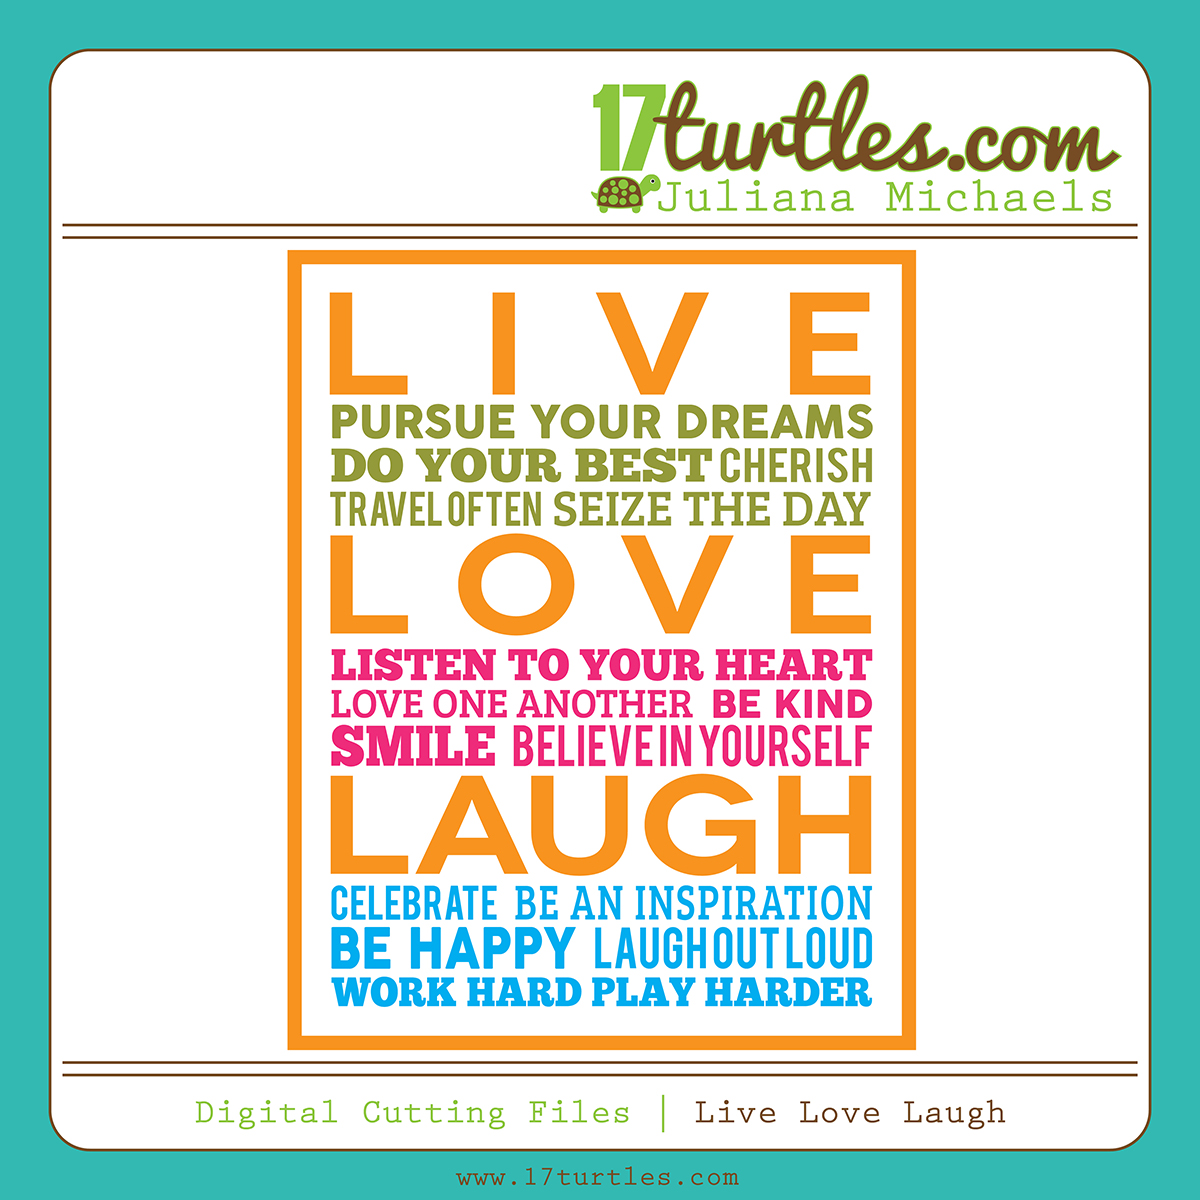 Live Love Laugh Free Digital Cutting File by Juliana Michaels 17turtles.com